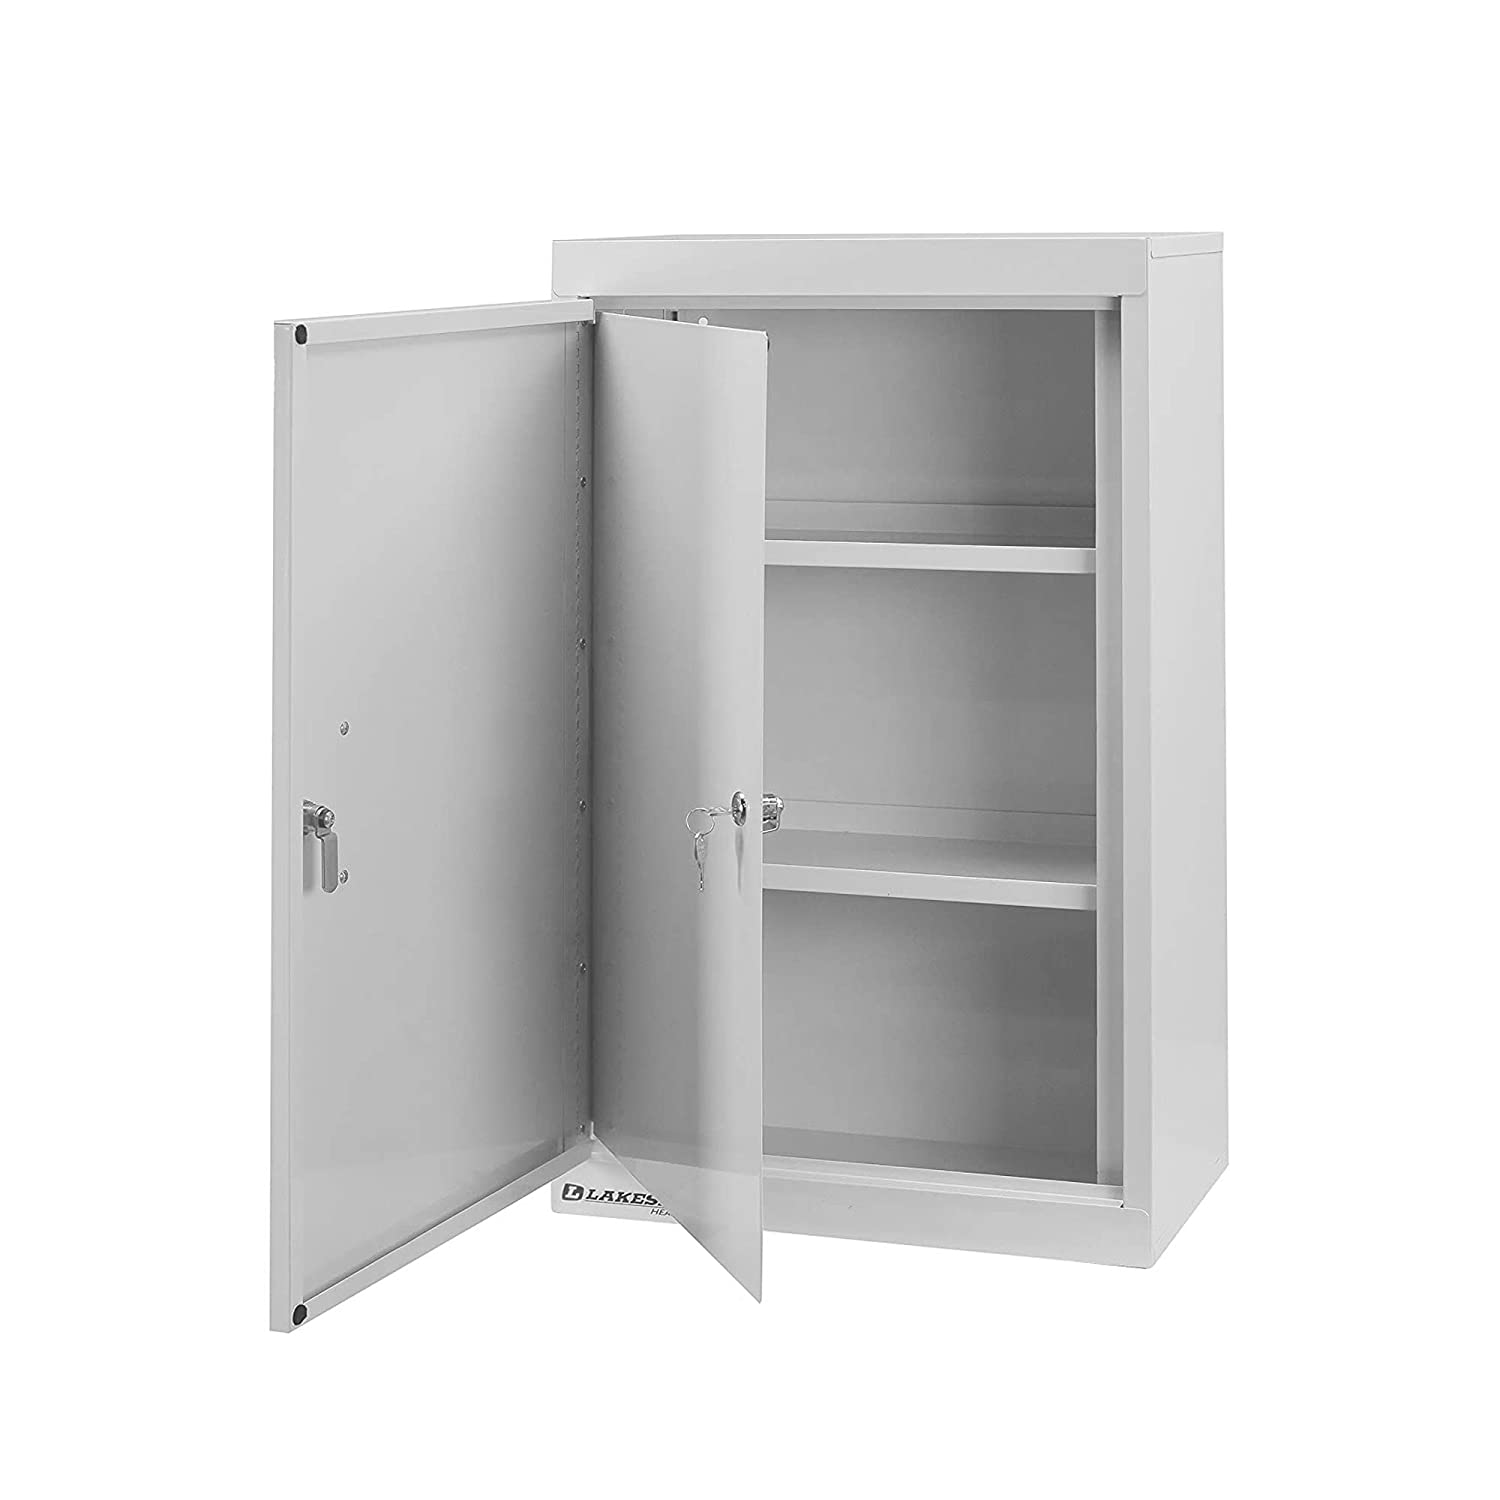 Lakeside LNC-6D Narcotic Cabinet, Steel, Double Door and Lock with 2 Adjustable Shelves (Fully Assembled)